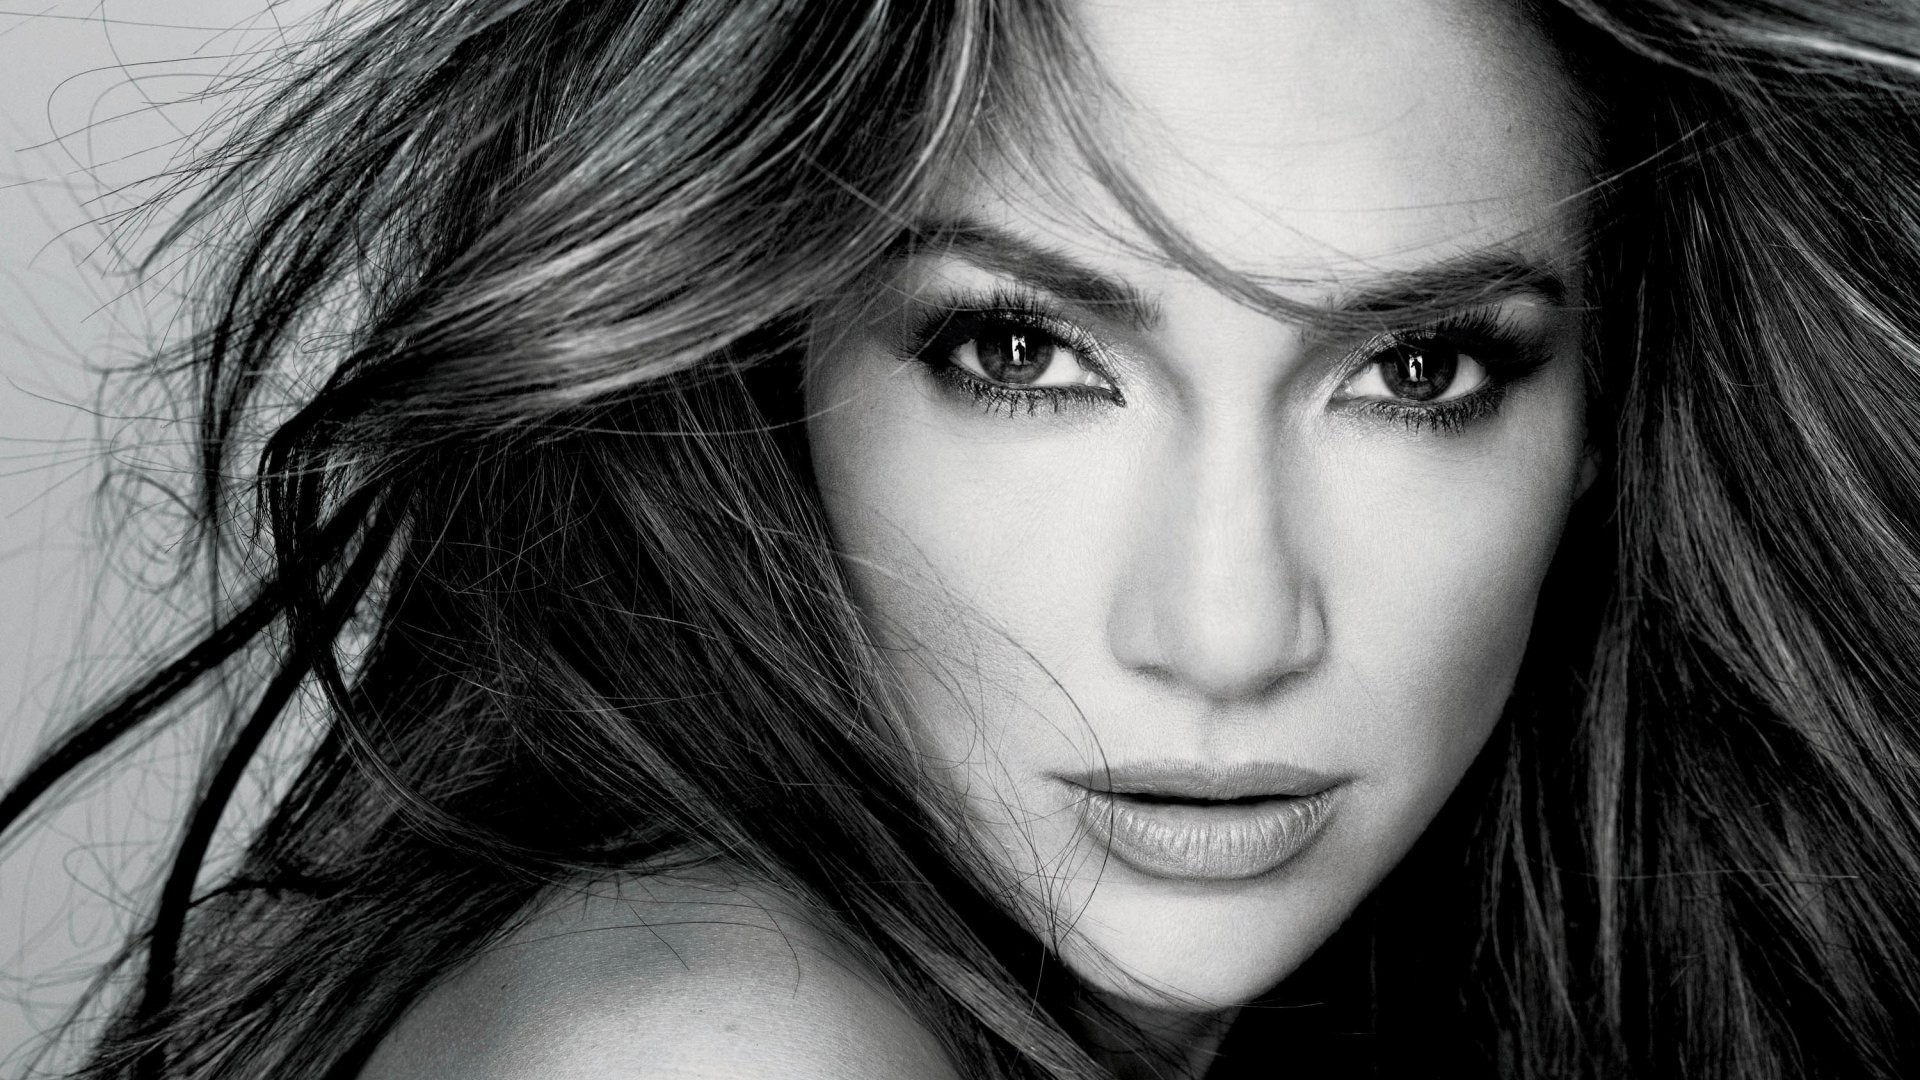 1920x1080 jlo black and white photoshoot - Google Search